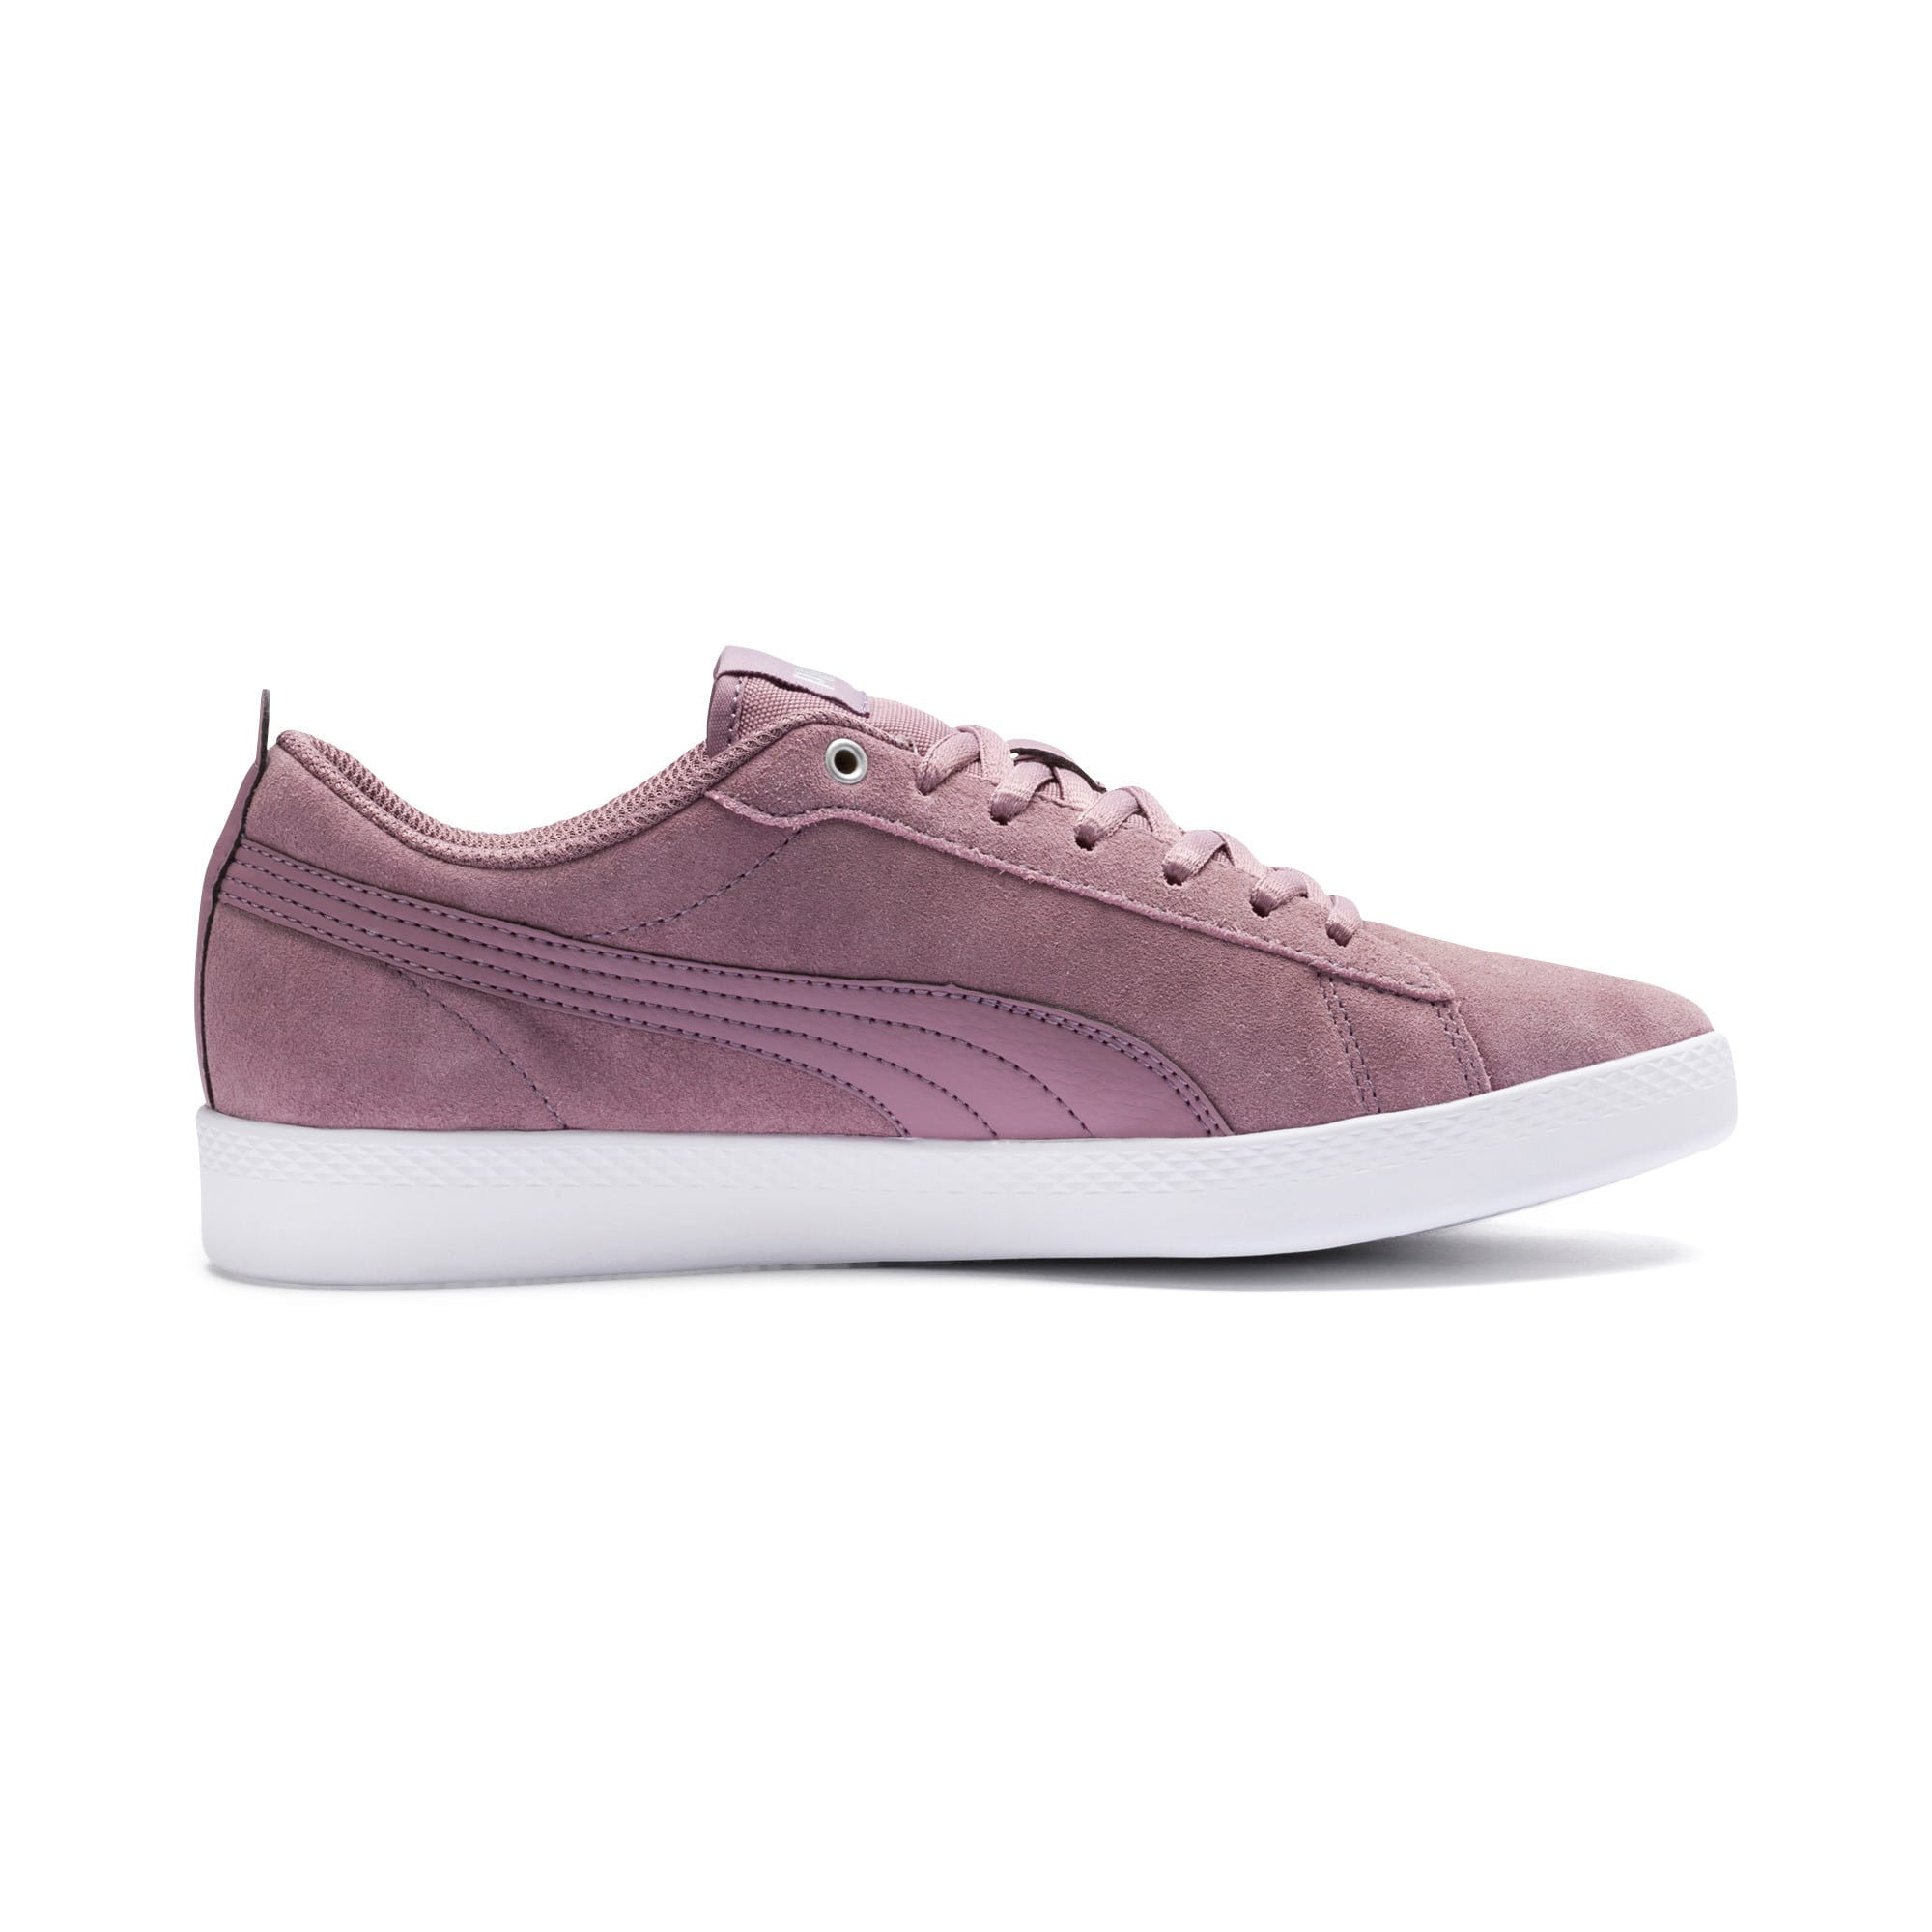 Thumbnail 5 of Smash v2 Suede Women's Sneakers, Elderberry-Silver-Puma White, medium